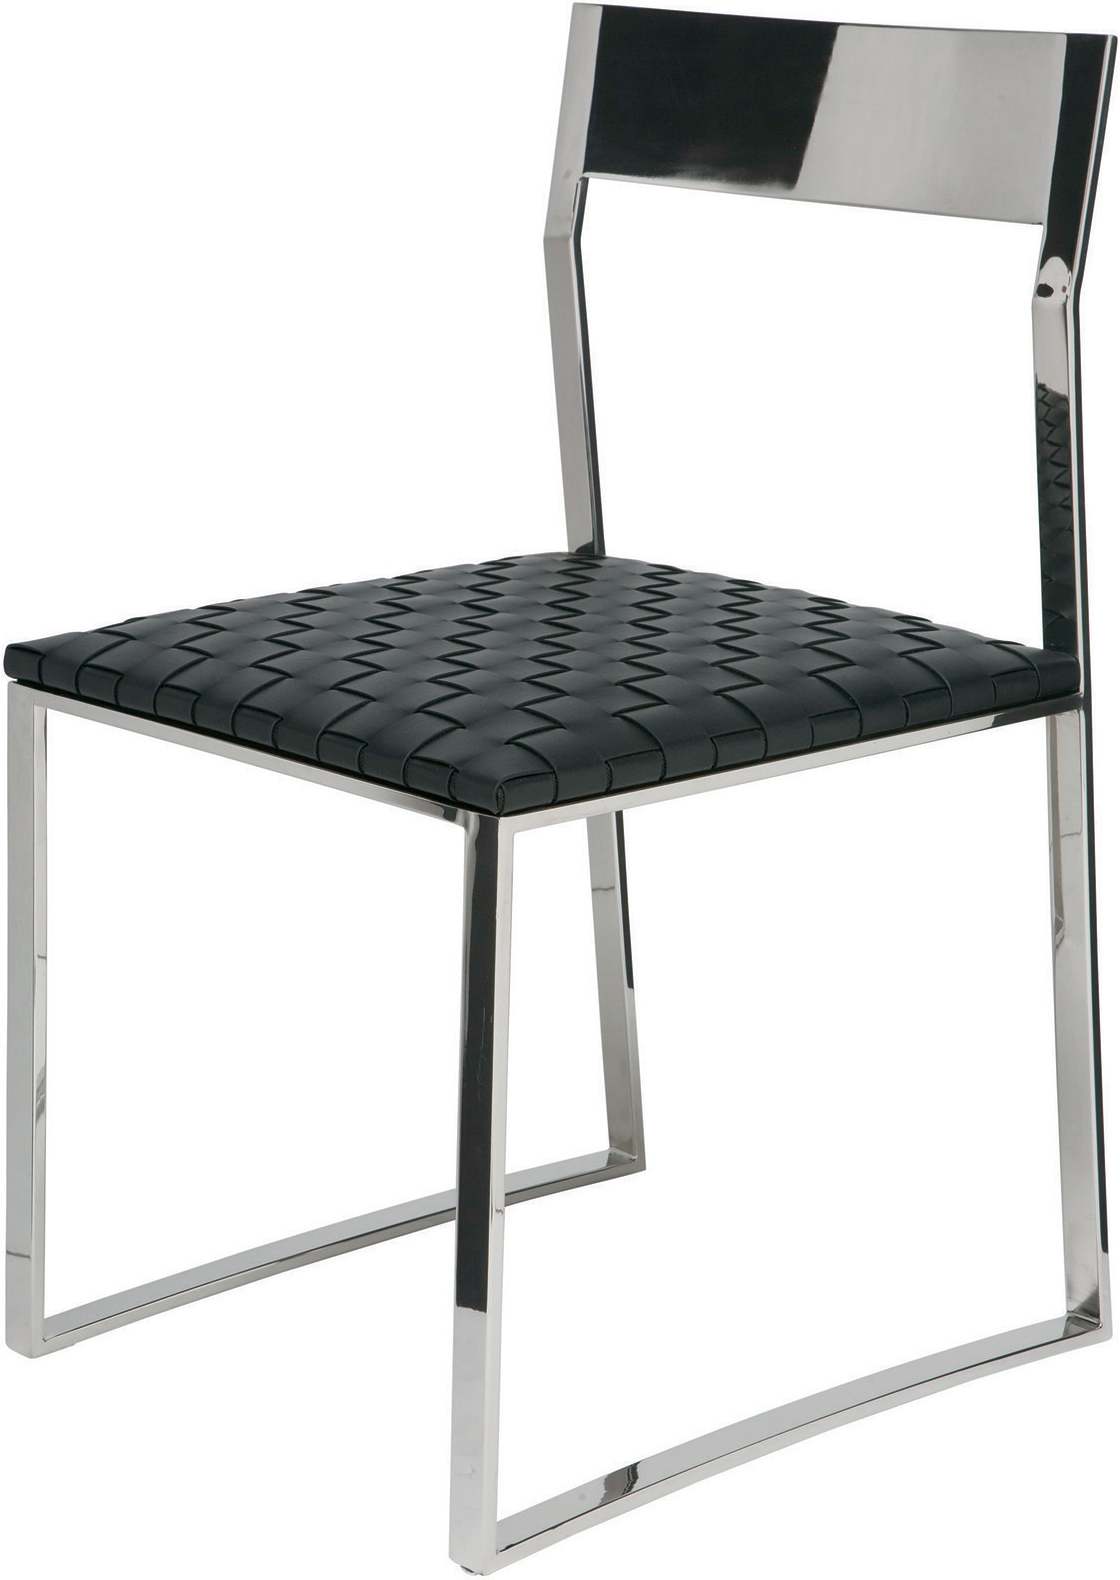 the camille dining chair in black